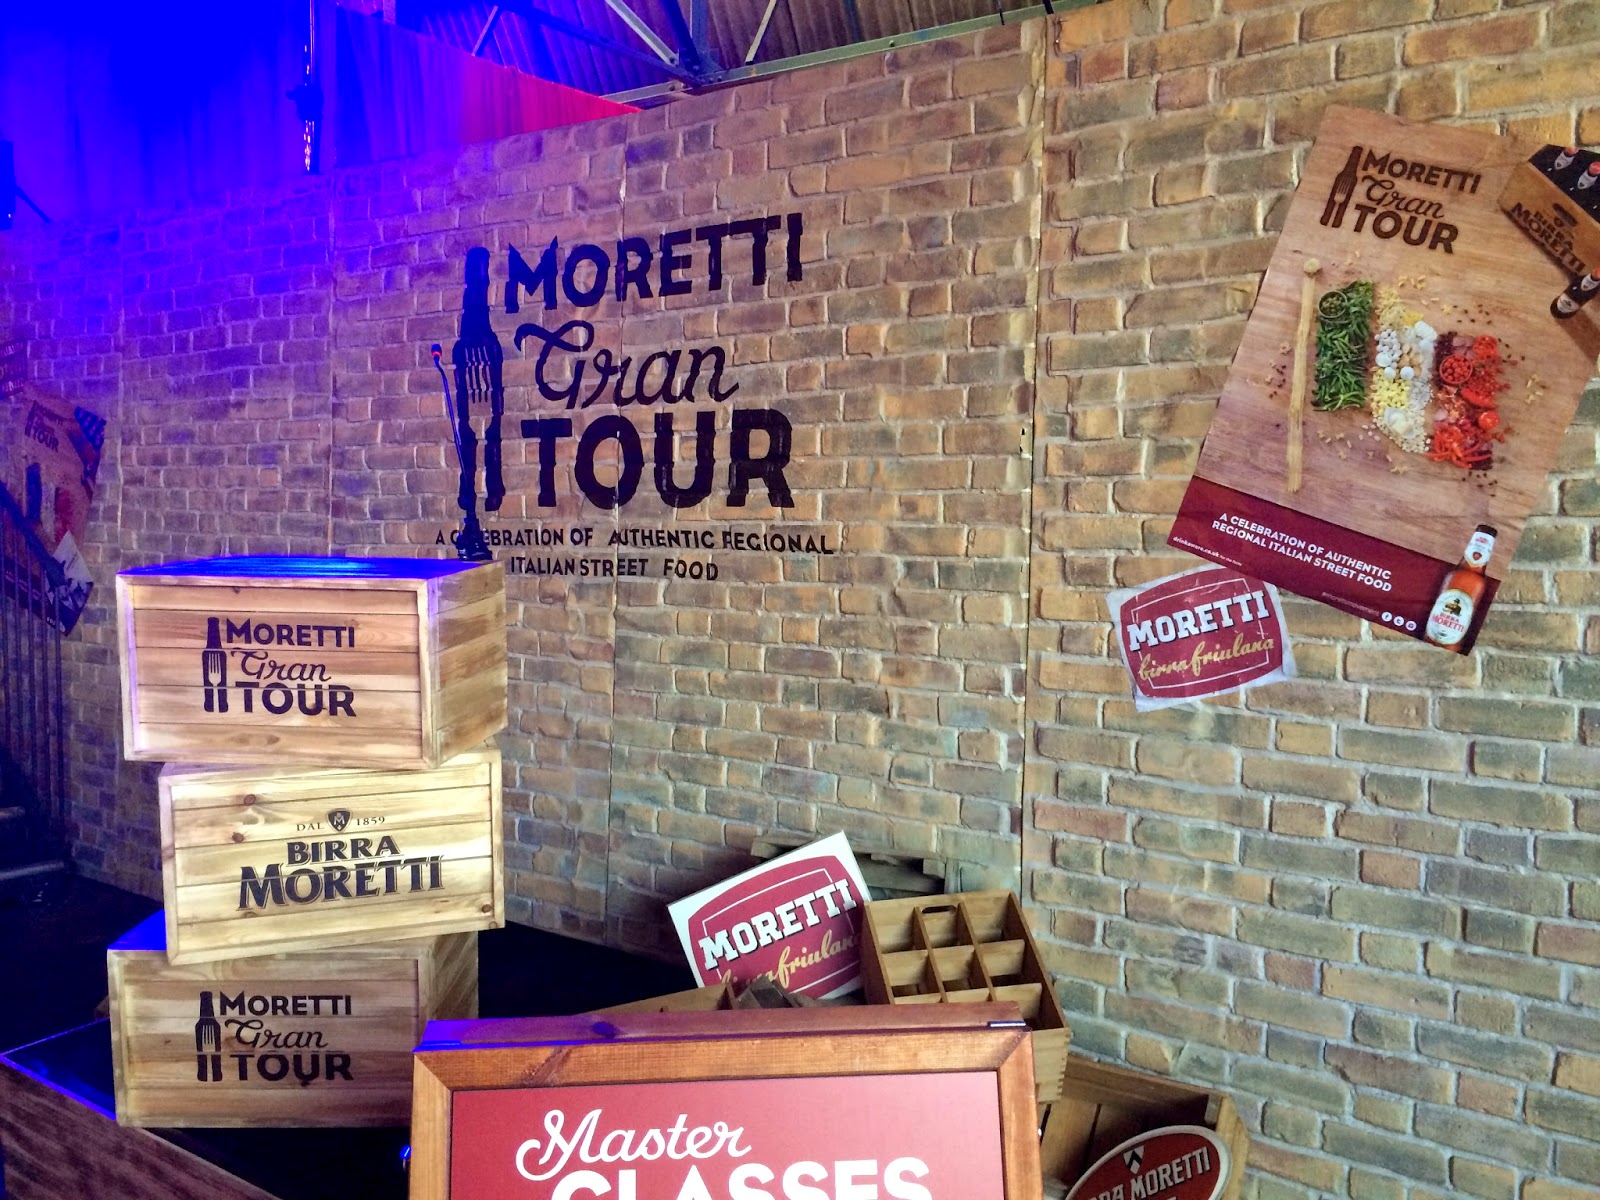 Moretti Gran Your- Factory 7 - Shoreditch